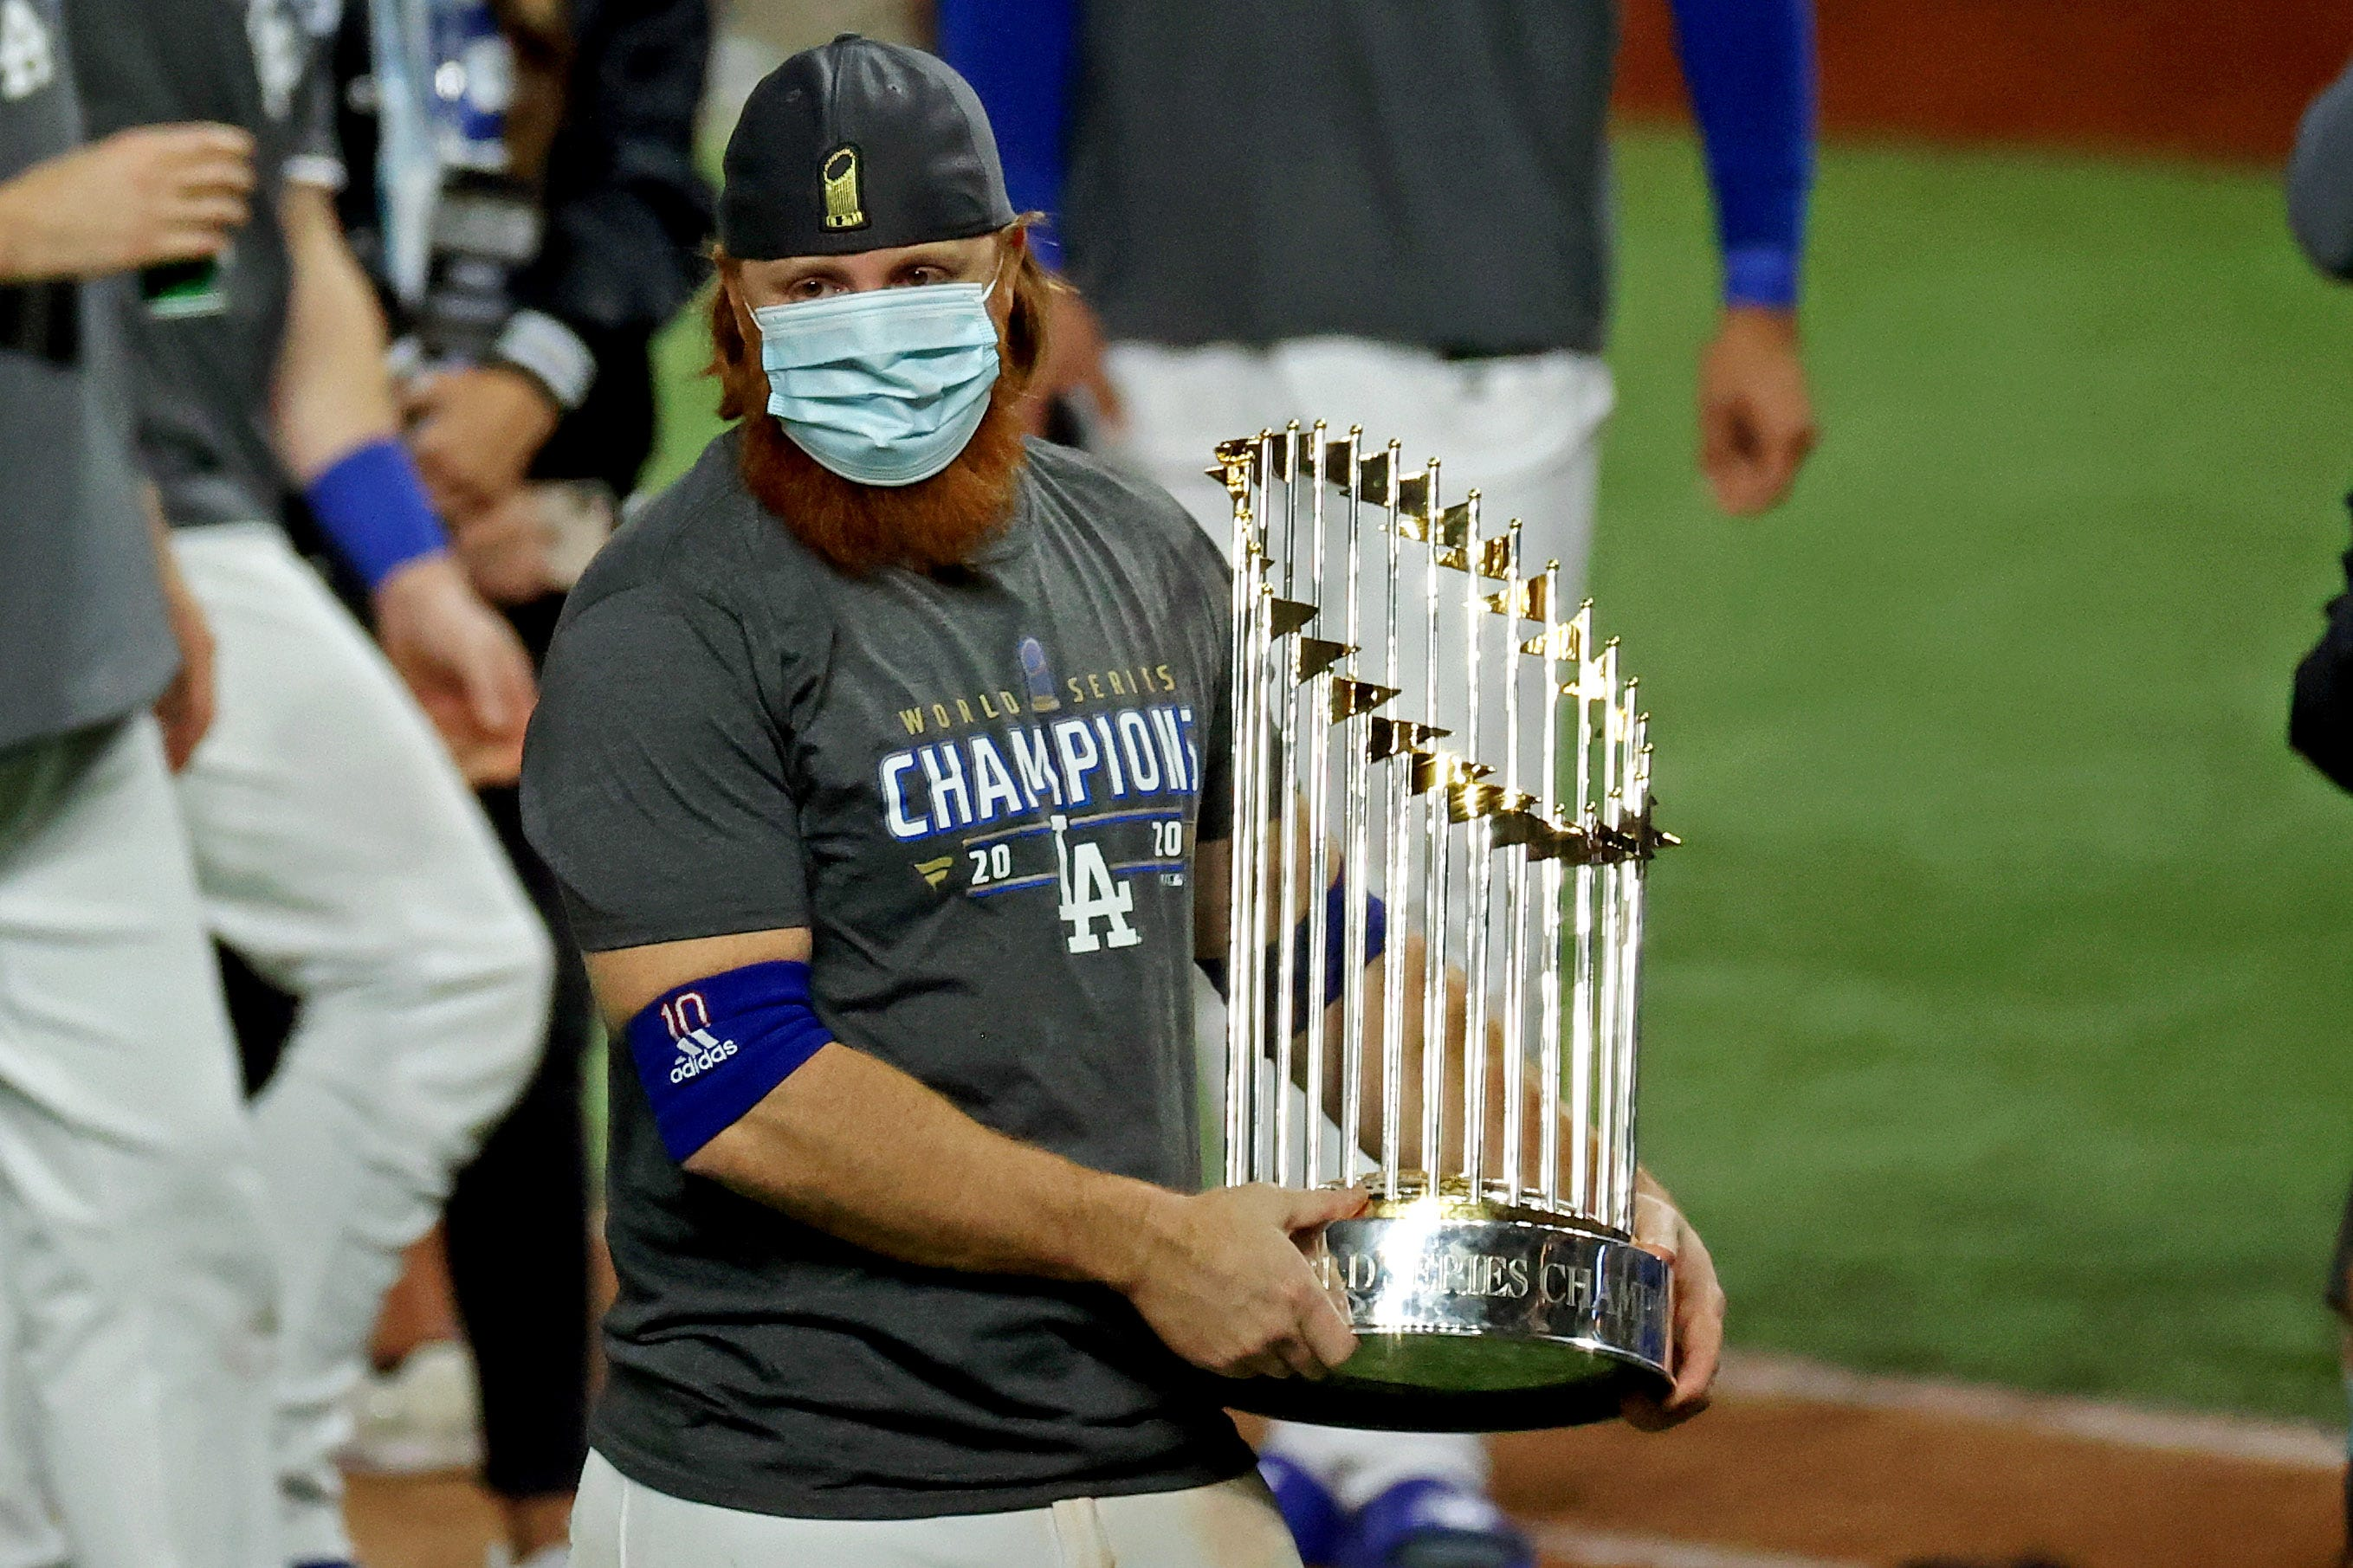 Justin Turner announces he s returning to the World Series champion Los Angeles Dodgers